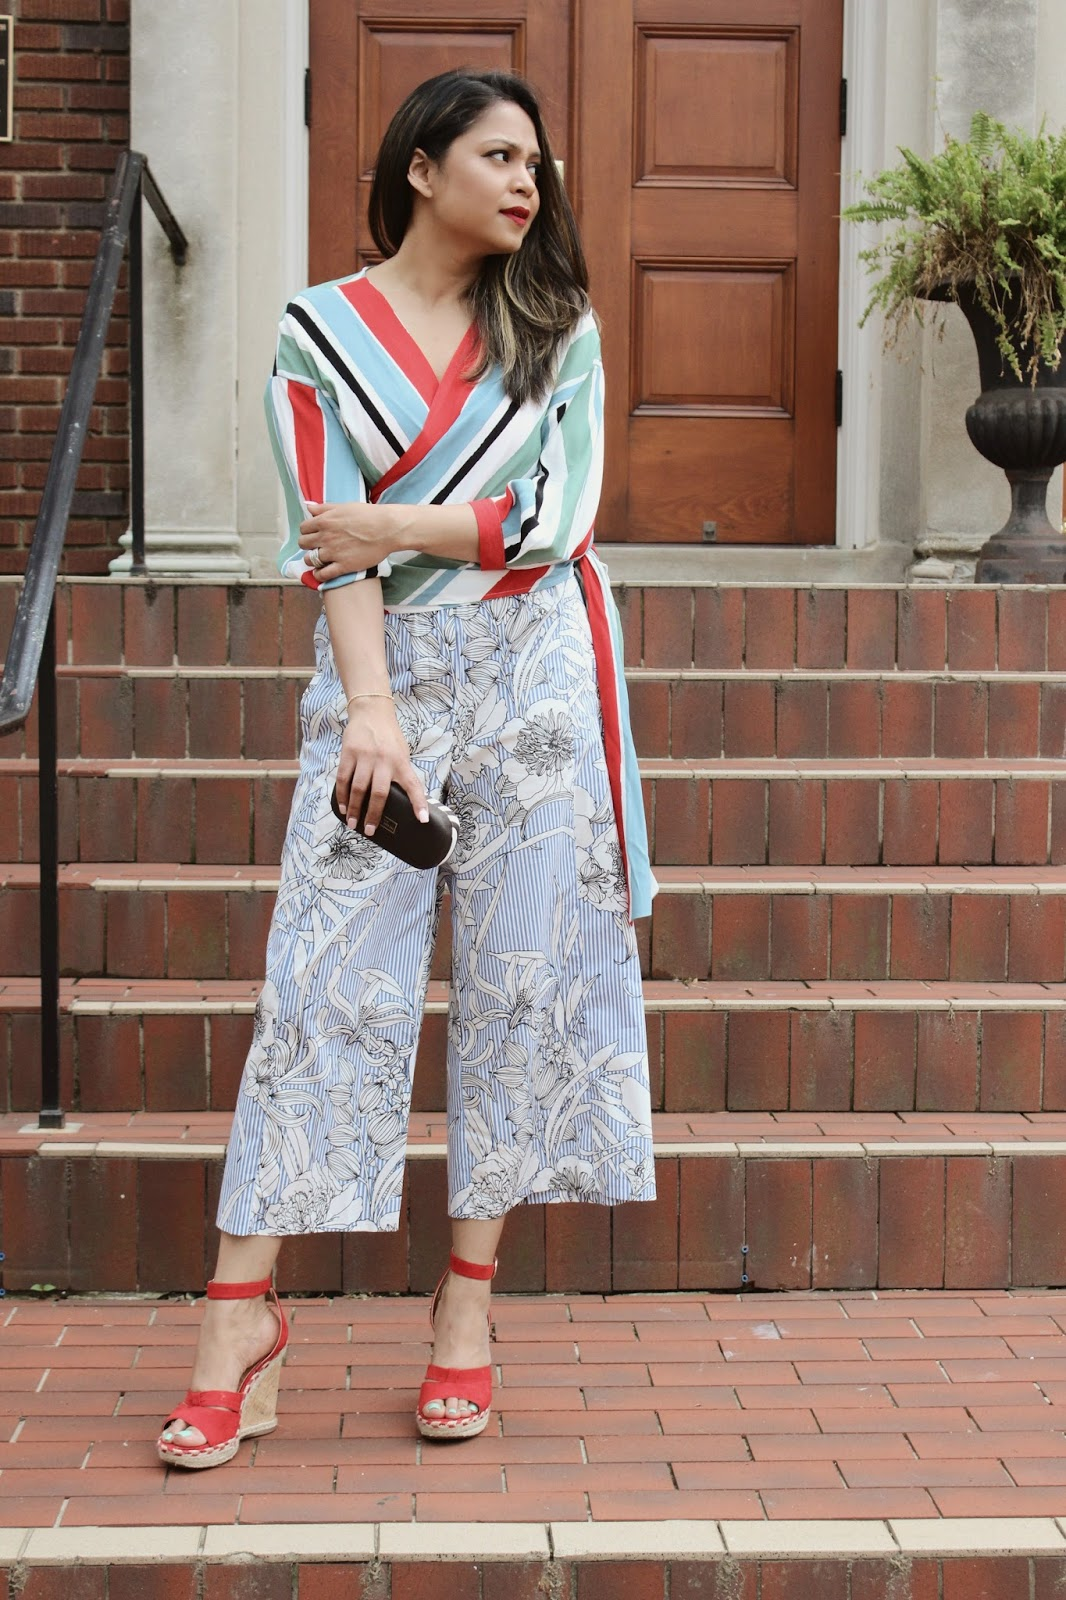 print mixing, how to wear prints, red wedges, TX maxx finds, summer shoes, trend talk, how to wear red and stripes, ootd, street style,. red lips, myriad musings